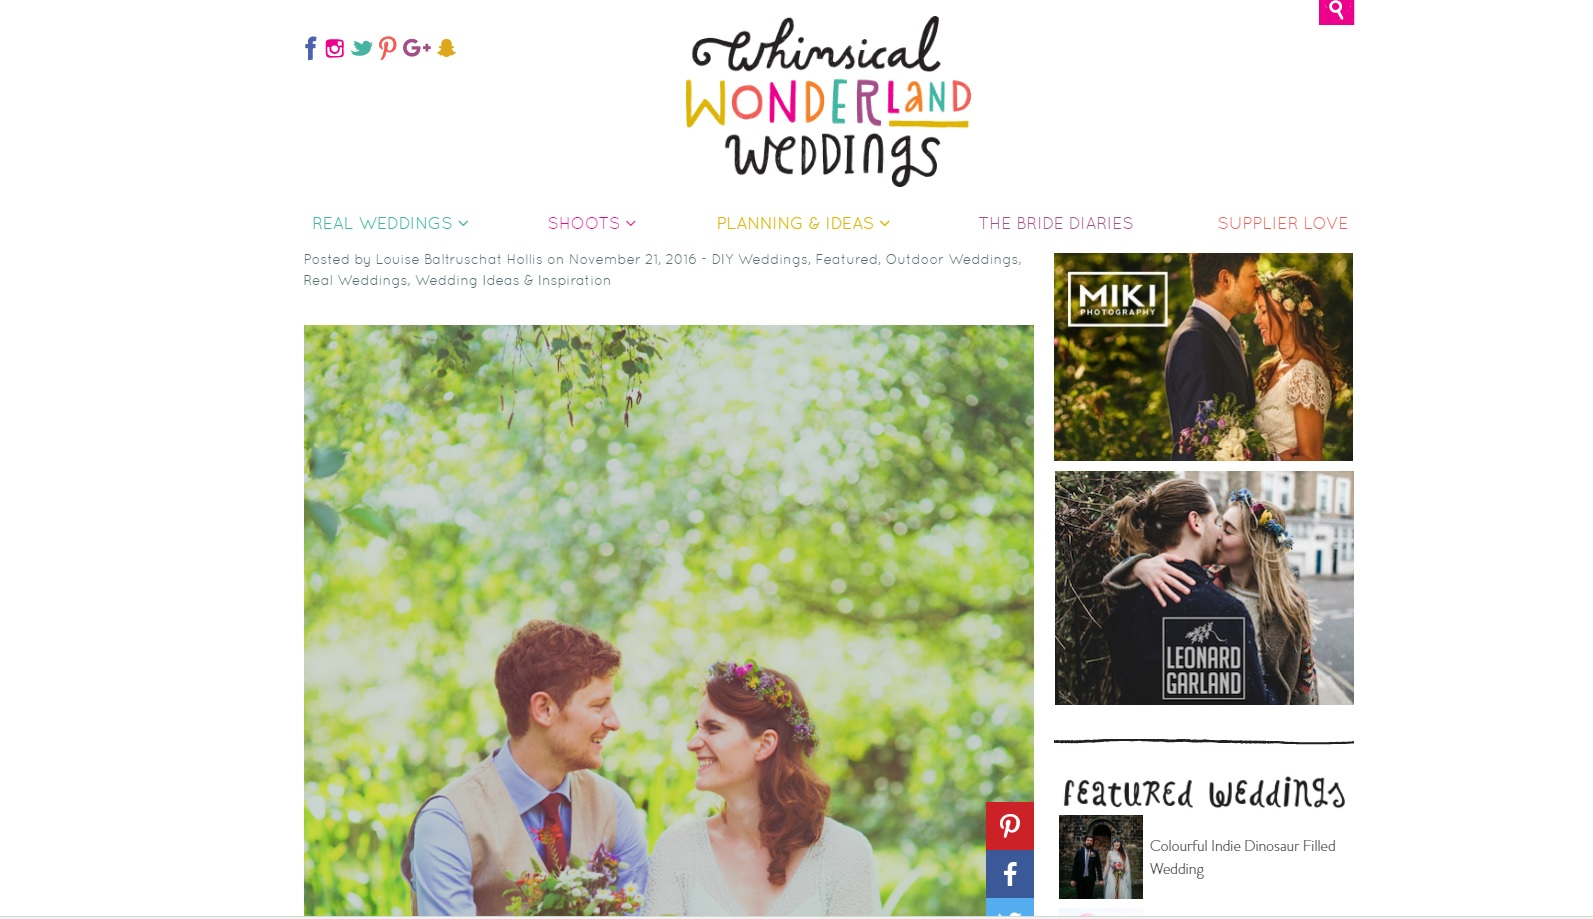 Colourful woodland wedding featured on Whimiscal Wonderland Weddings.